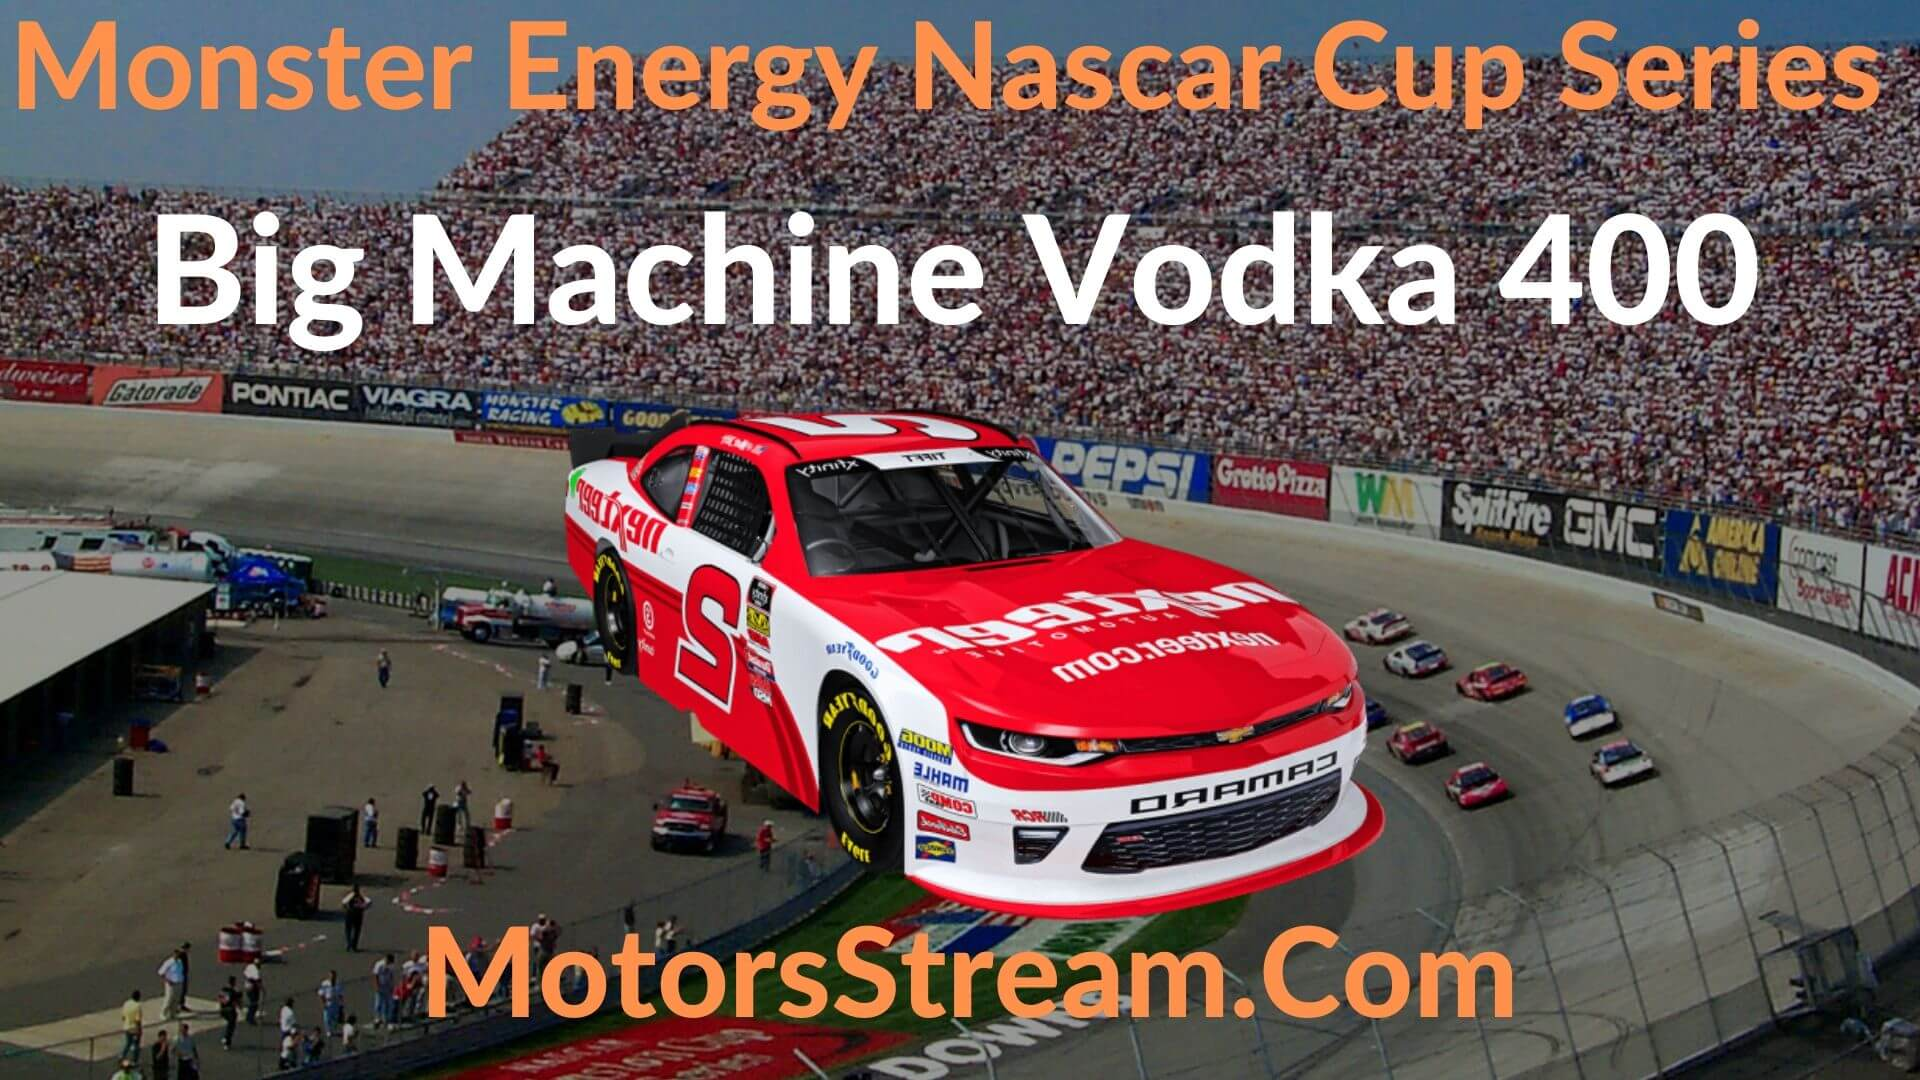 Big Machine Vodka 400 Live Stream | NASCAR CUP 2020